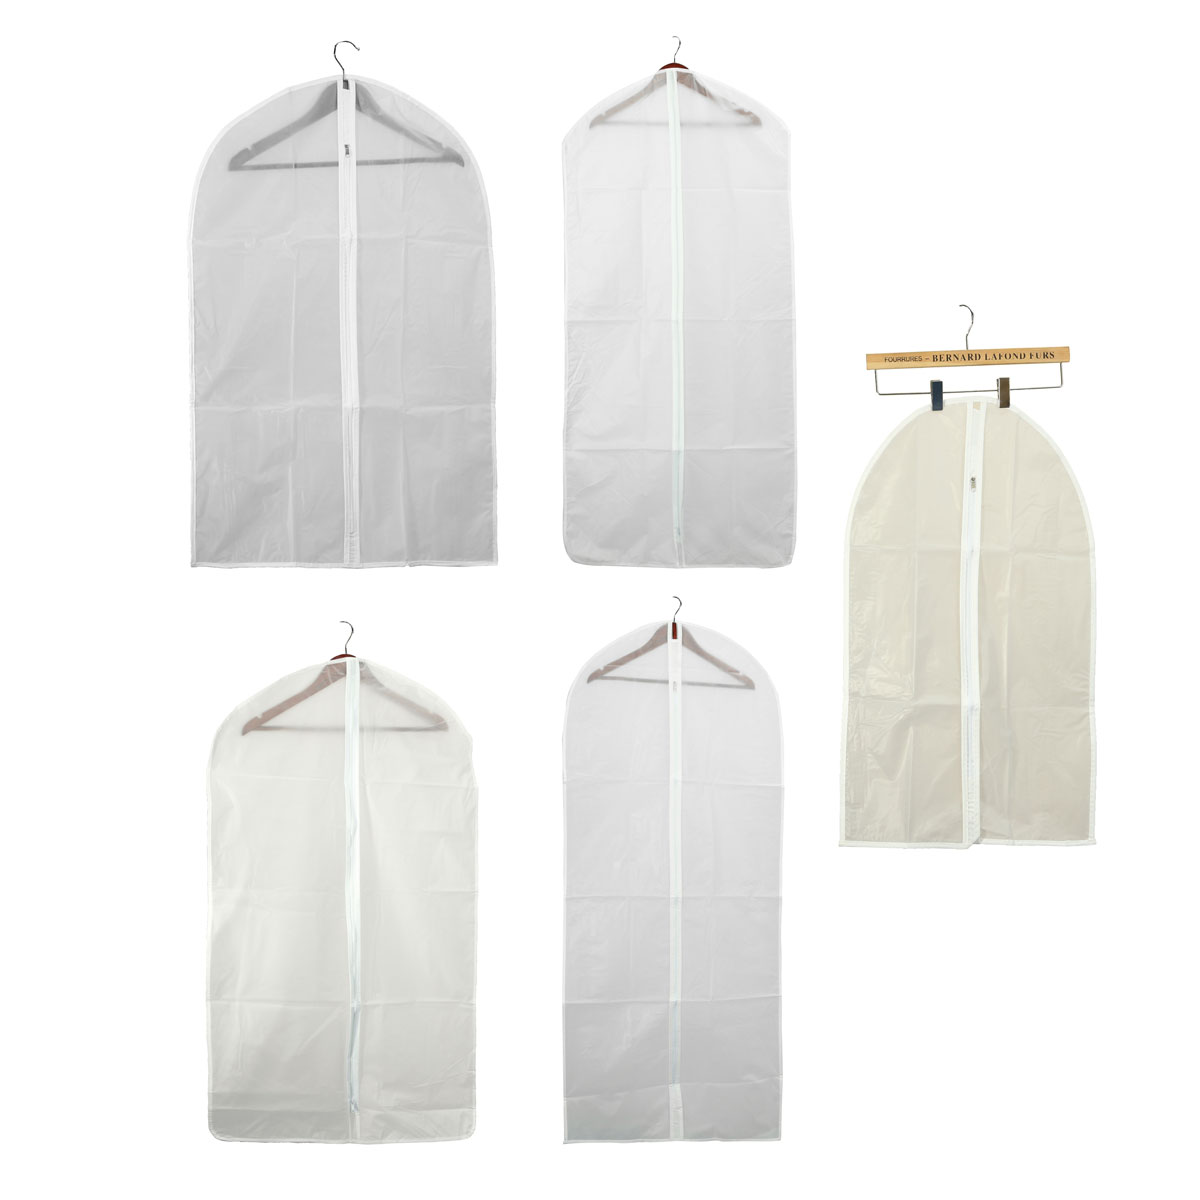 Peva Clear Washable Coat Suits Protective Cover Clothes Garment Storage Bag Household Wardrobe Useful Storing Tools Accessories In Bags From Home